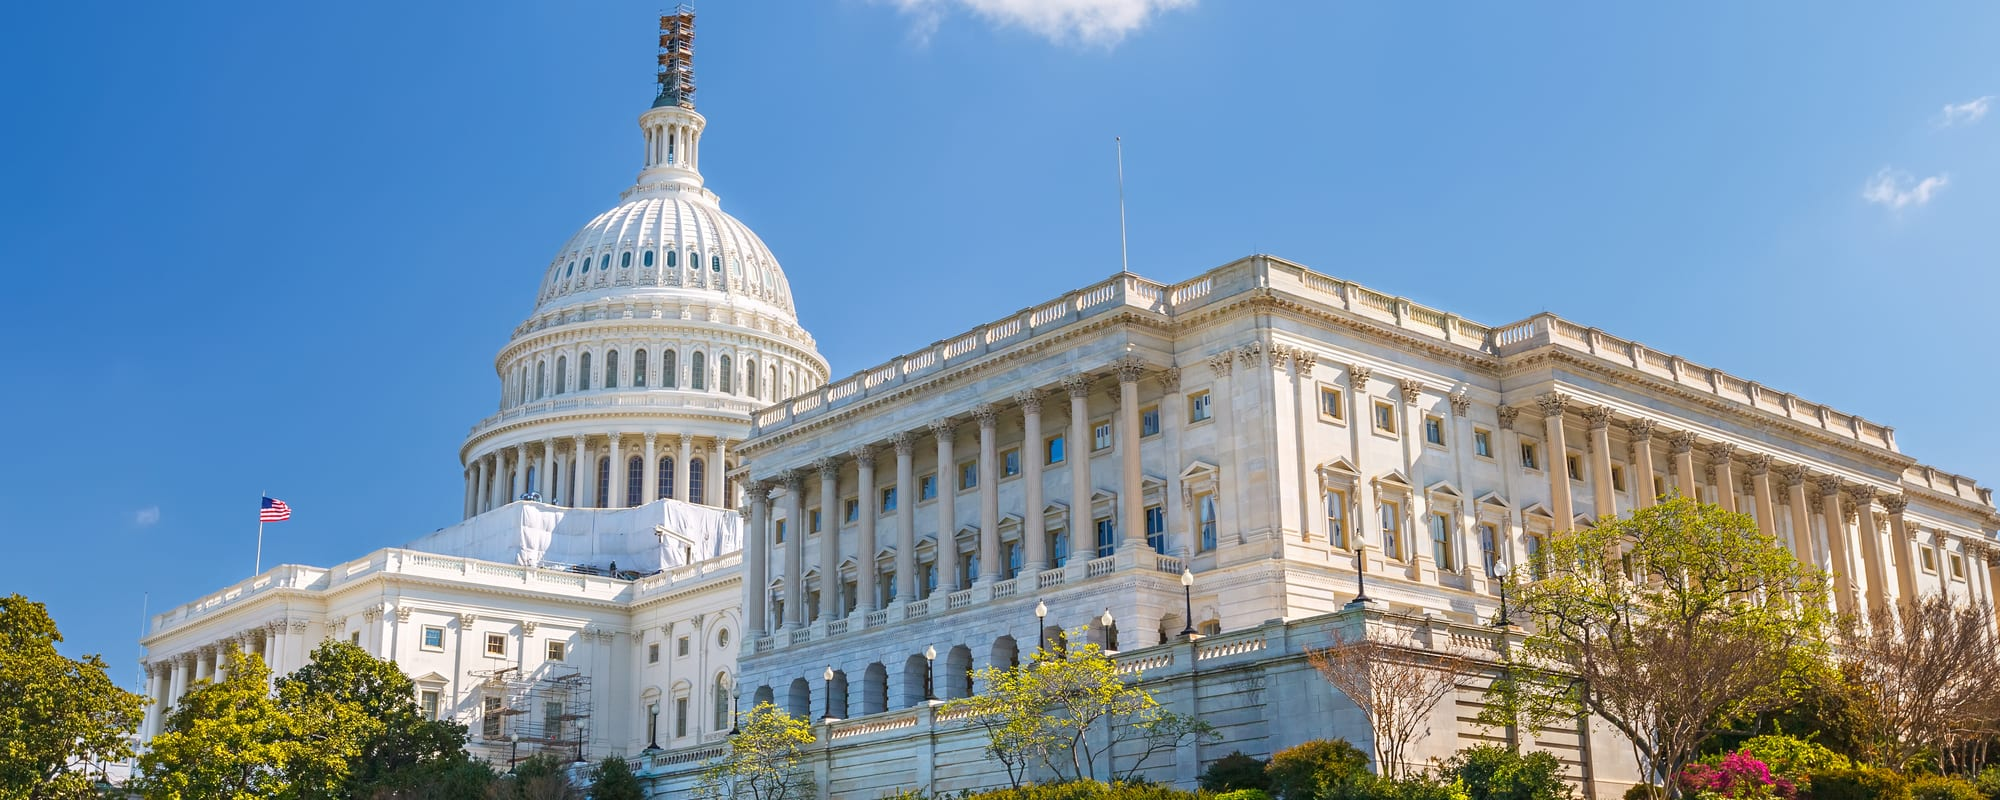 Washington Dc Tours >> 14 Tips For Your First Visit To Washington D C Usa Guided Tours